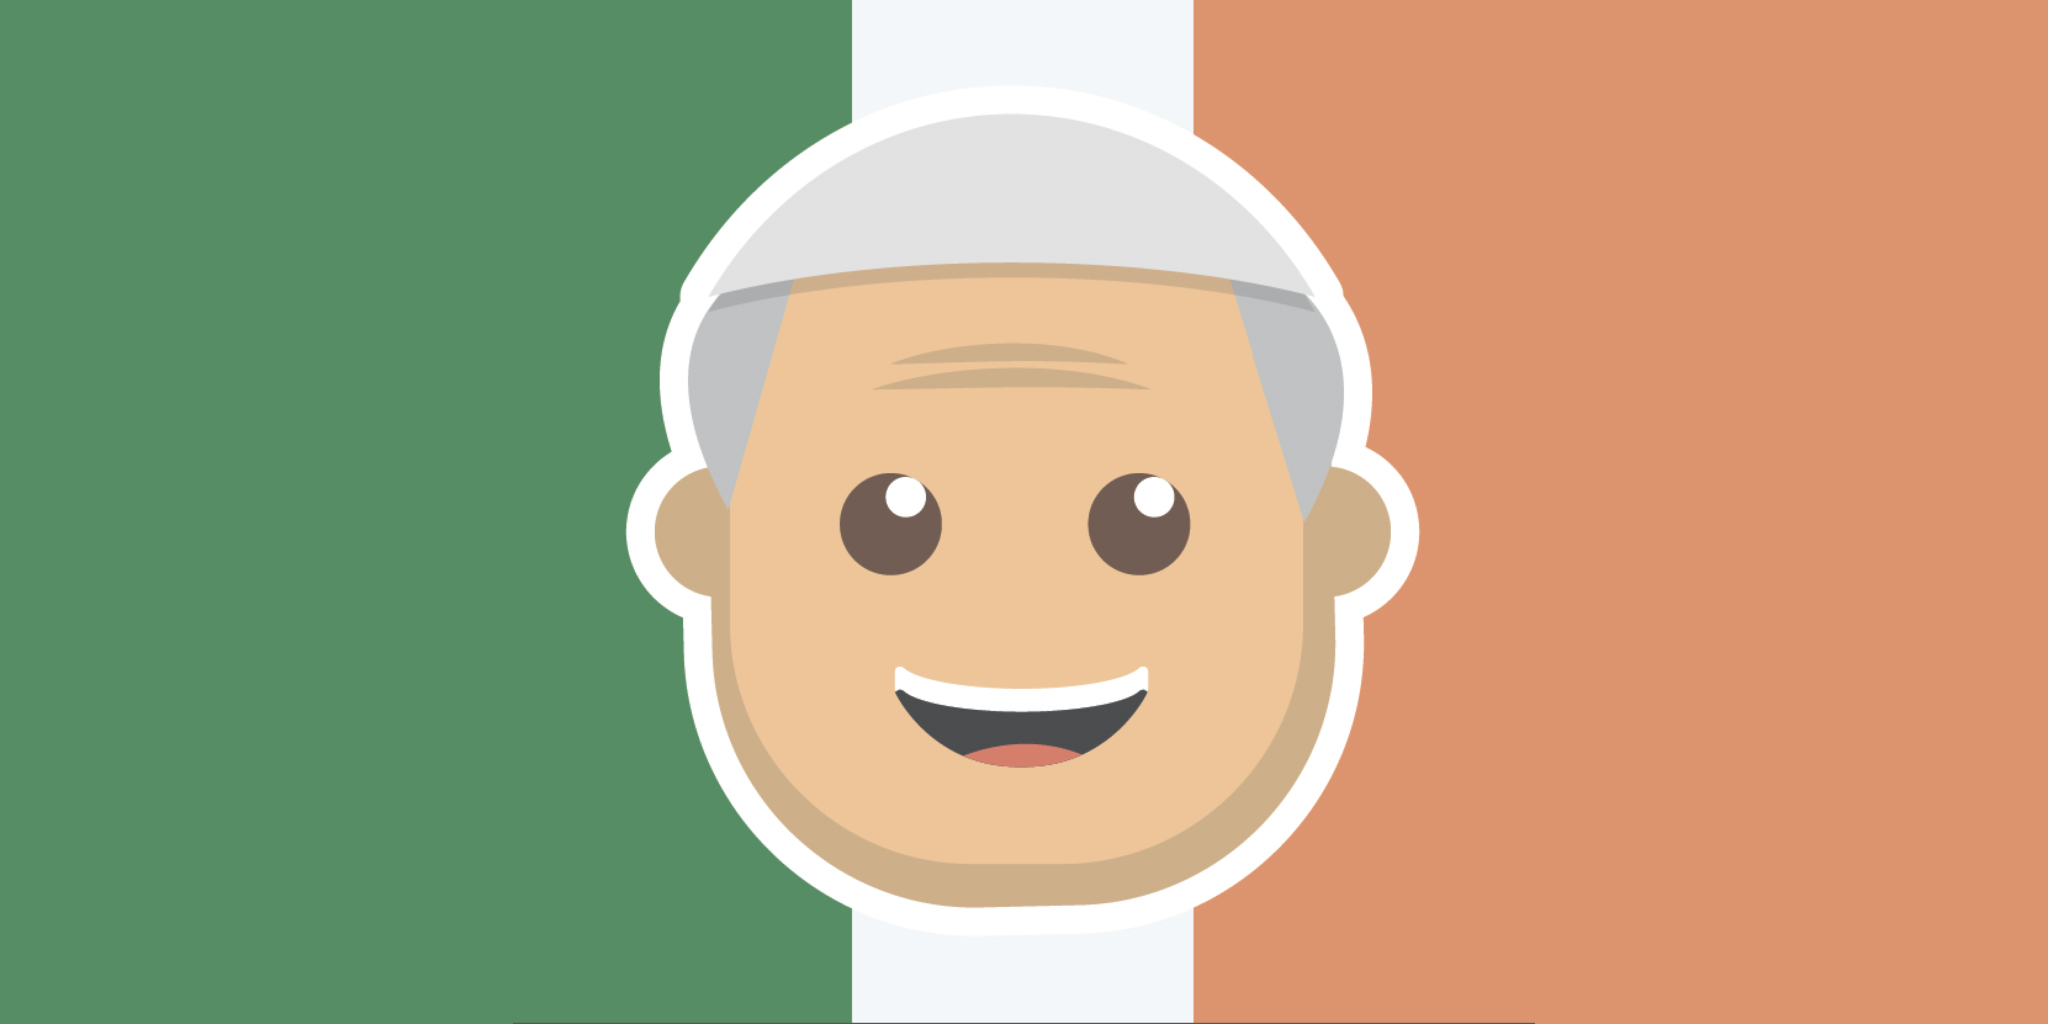 IRELAND,POPE EMOJI